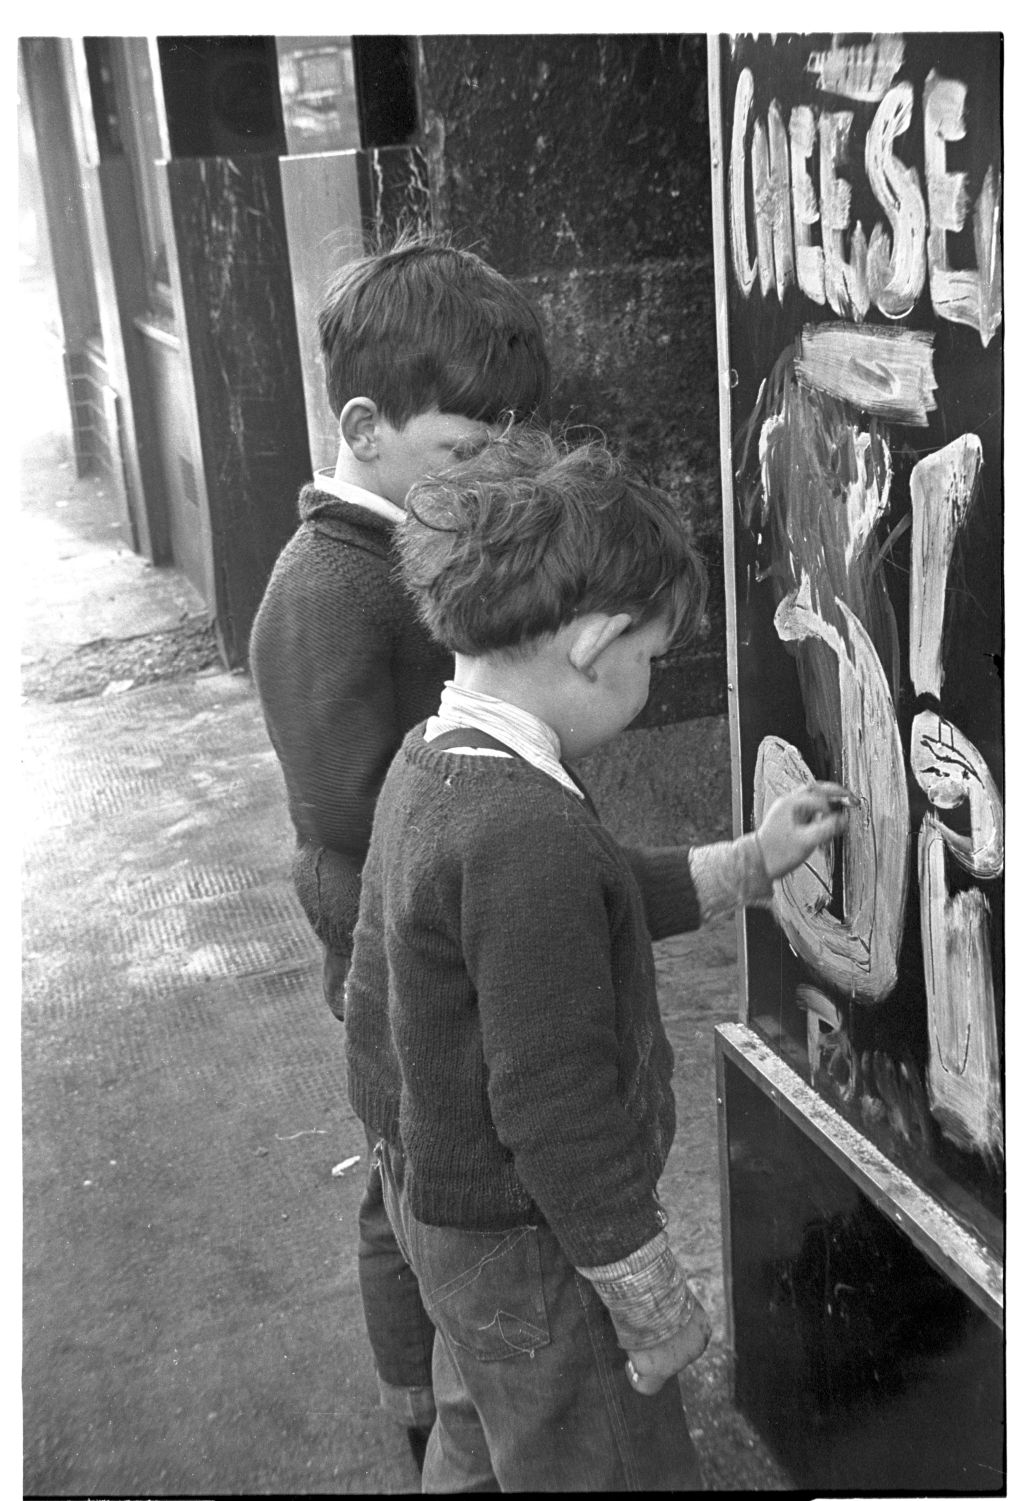 [Children Playing with Grocer's Sign]